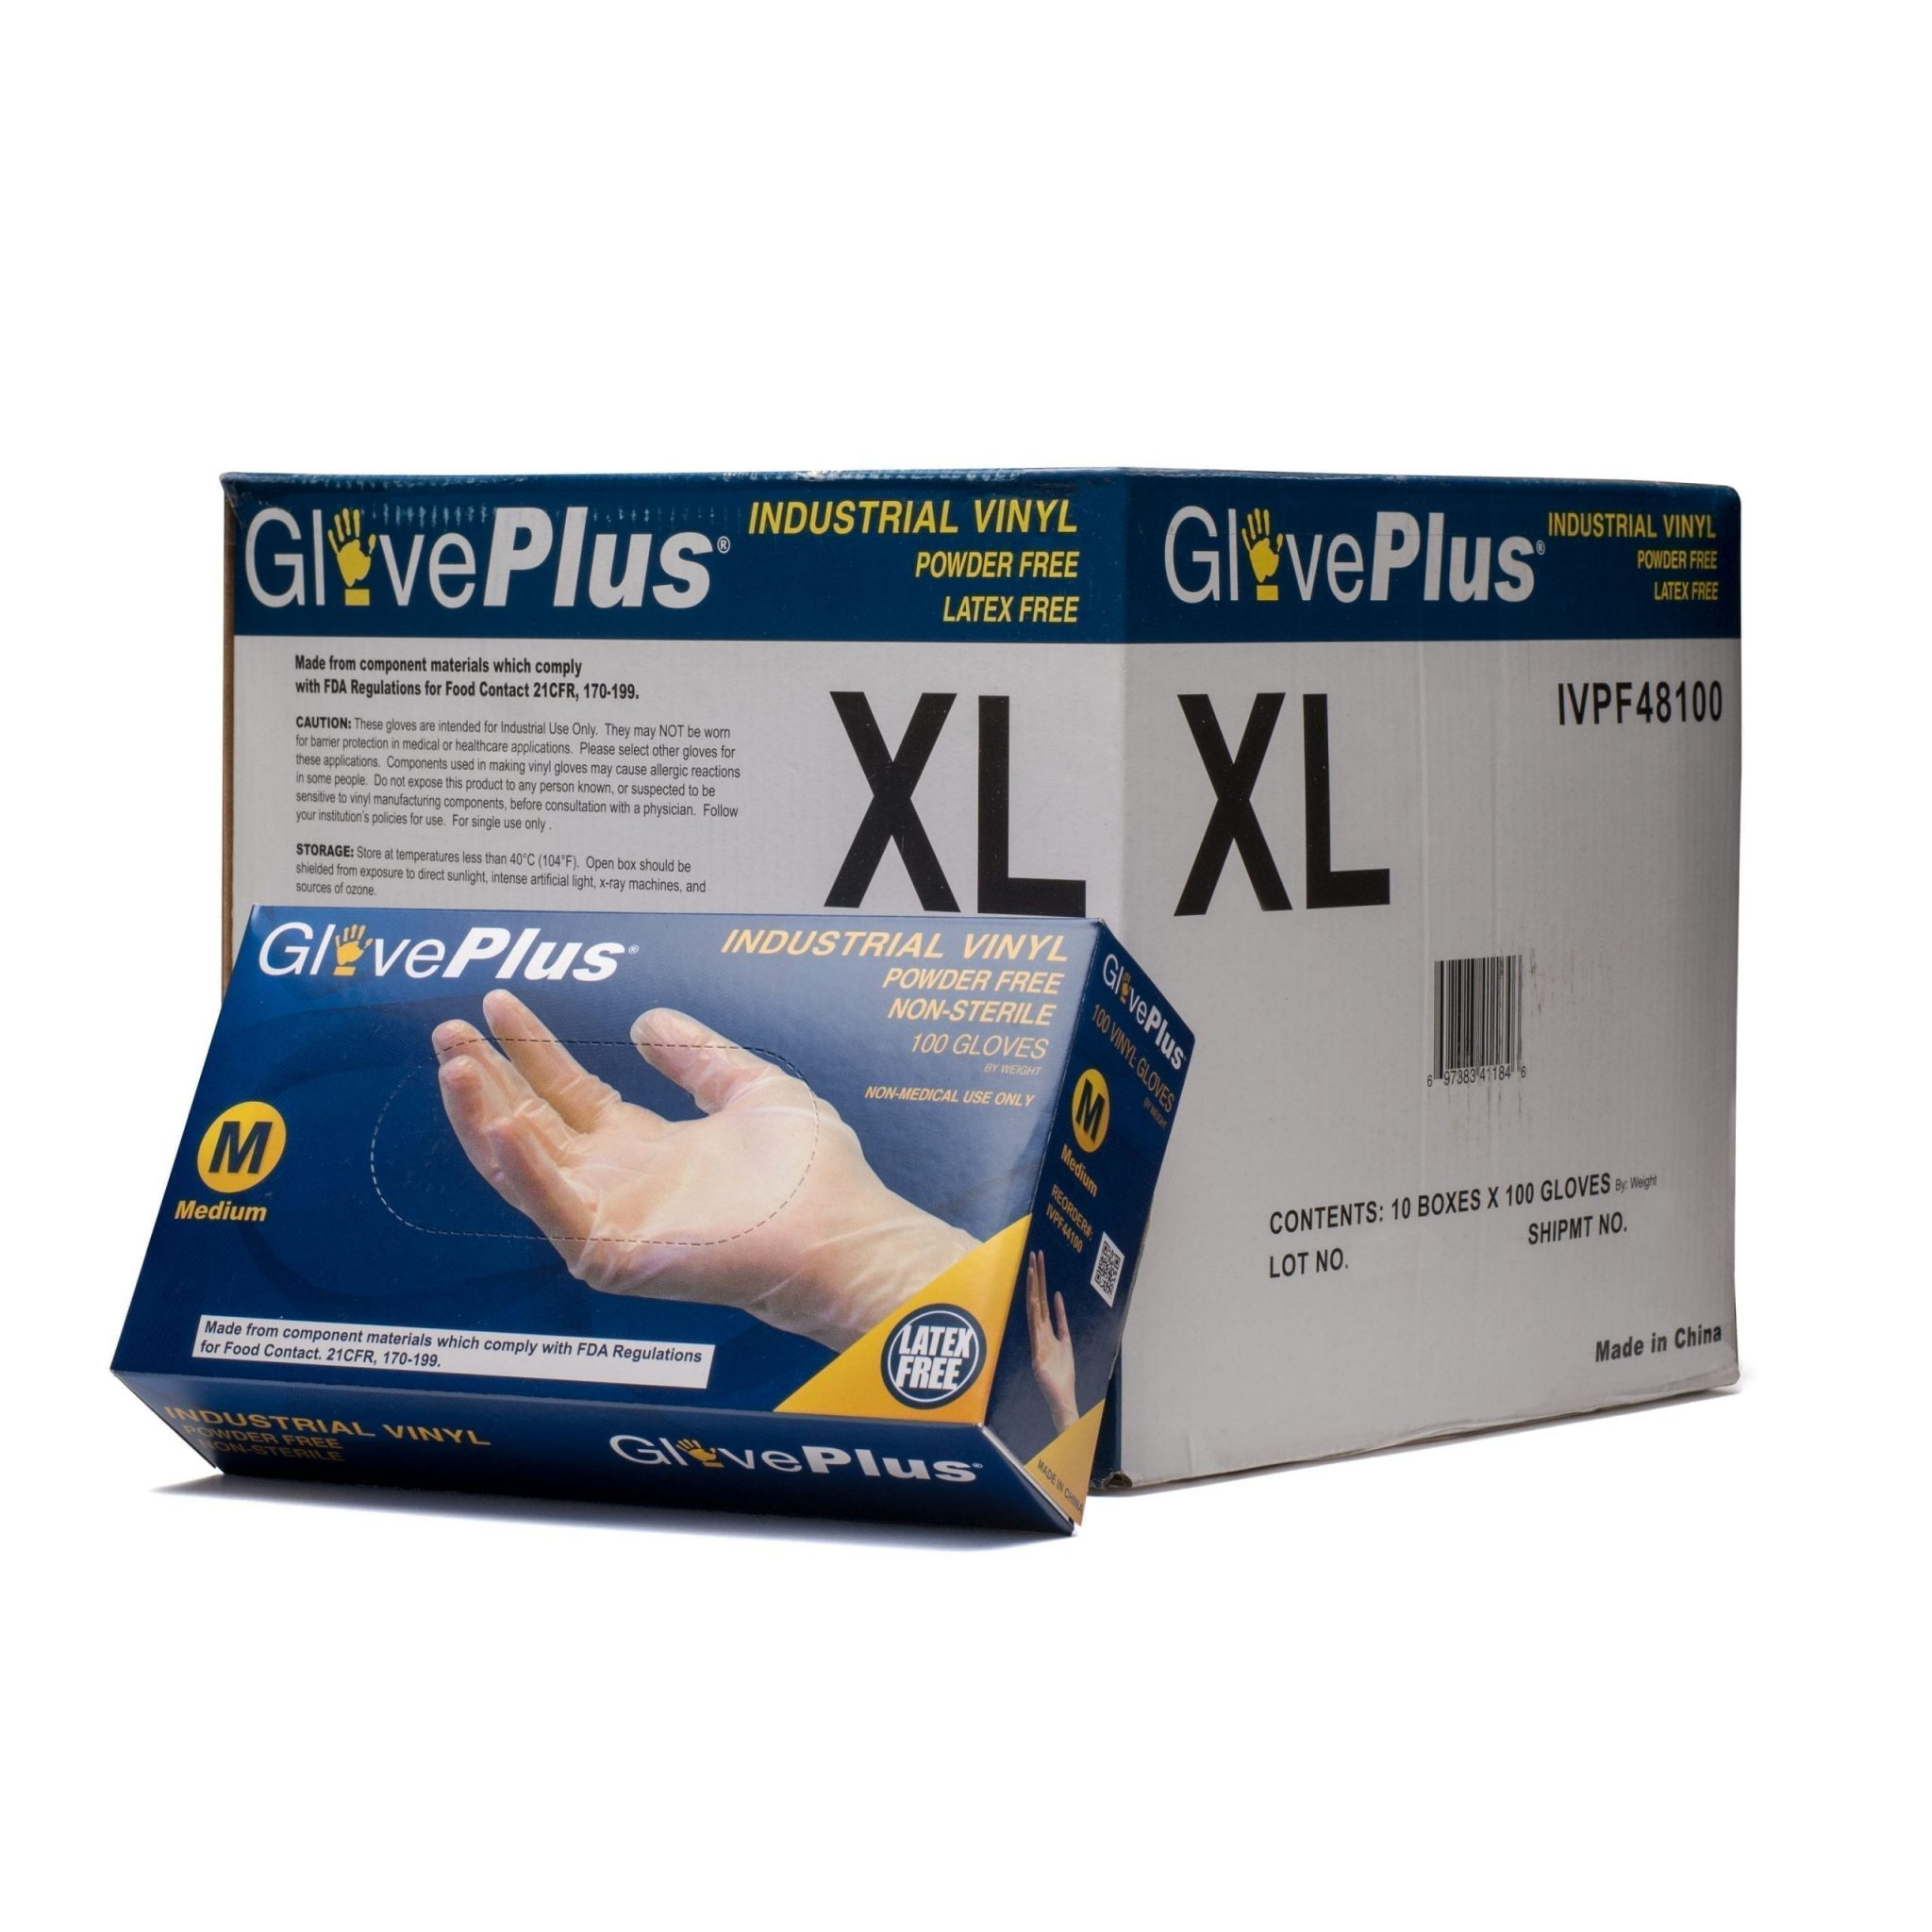 GlovePlus Clear Vinyl Industrial Latex Free Disposable Gloves